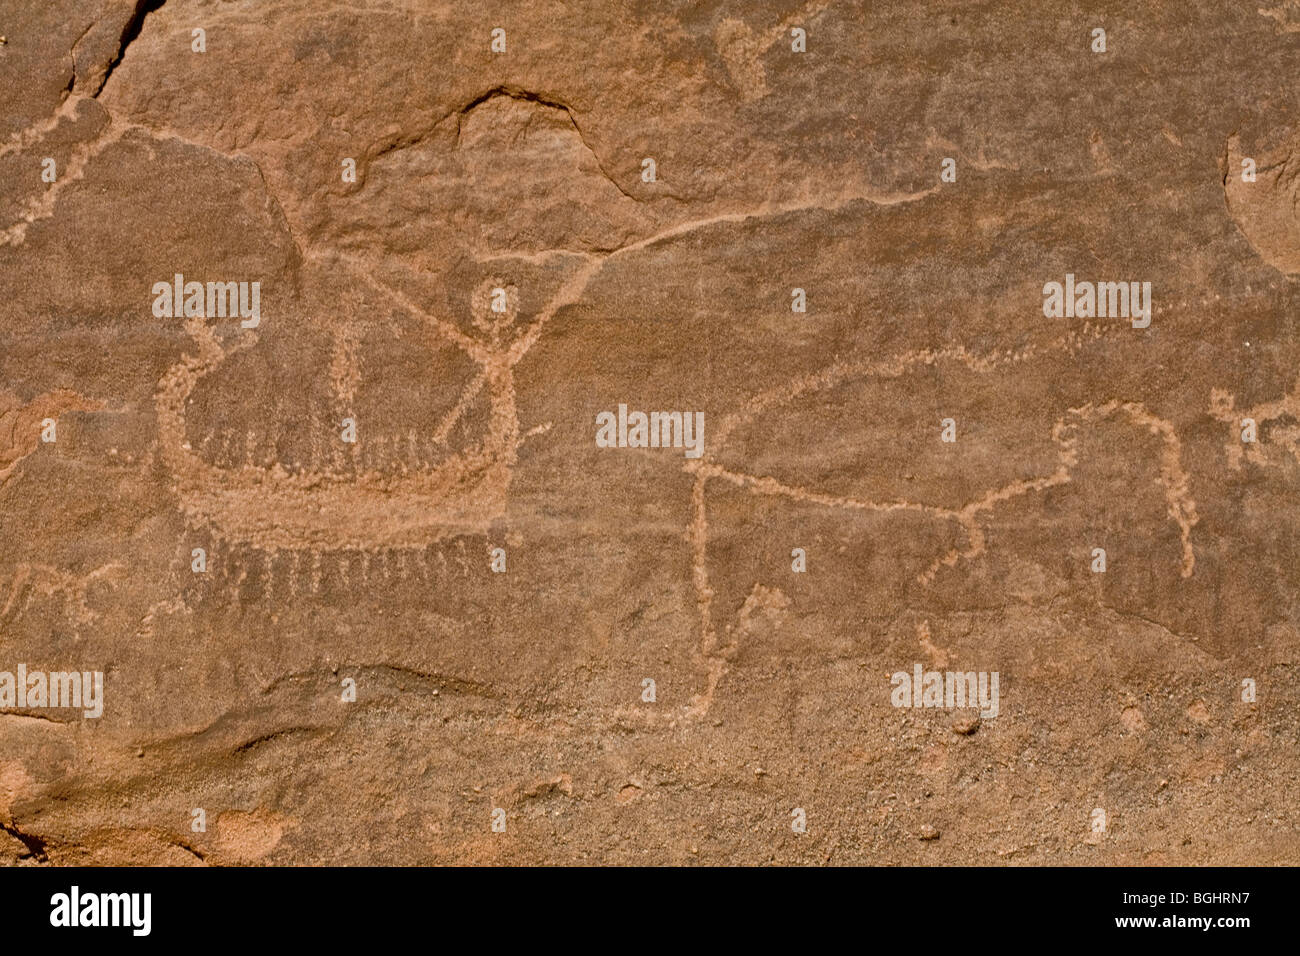 Close up of one of the boats at Winklers famous Rock-Art site 26 in Wadi Abu Wasil in the Eastern Desert of Egypt. - Stock Image